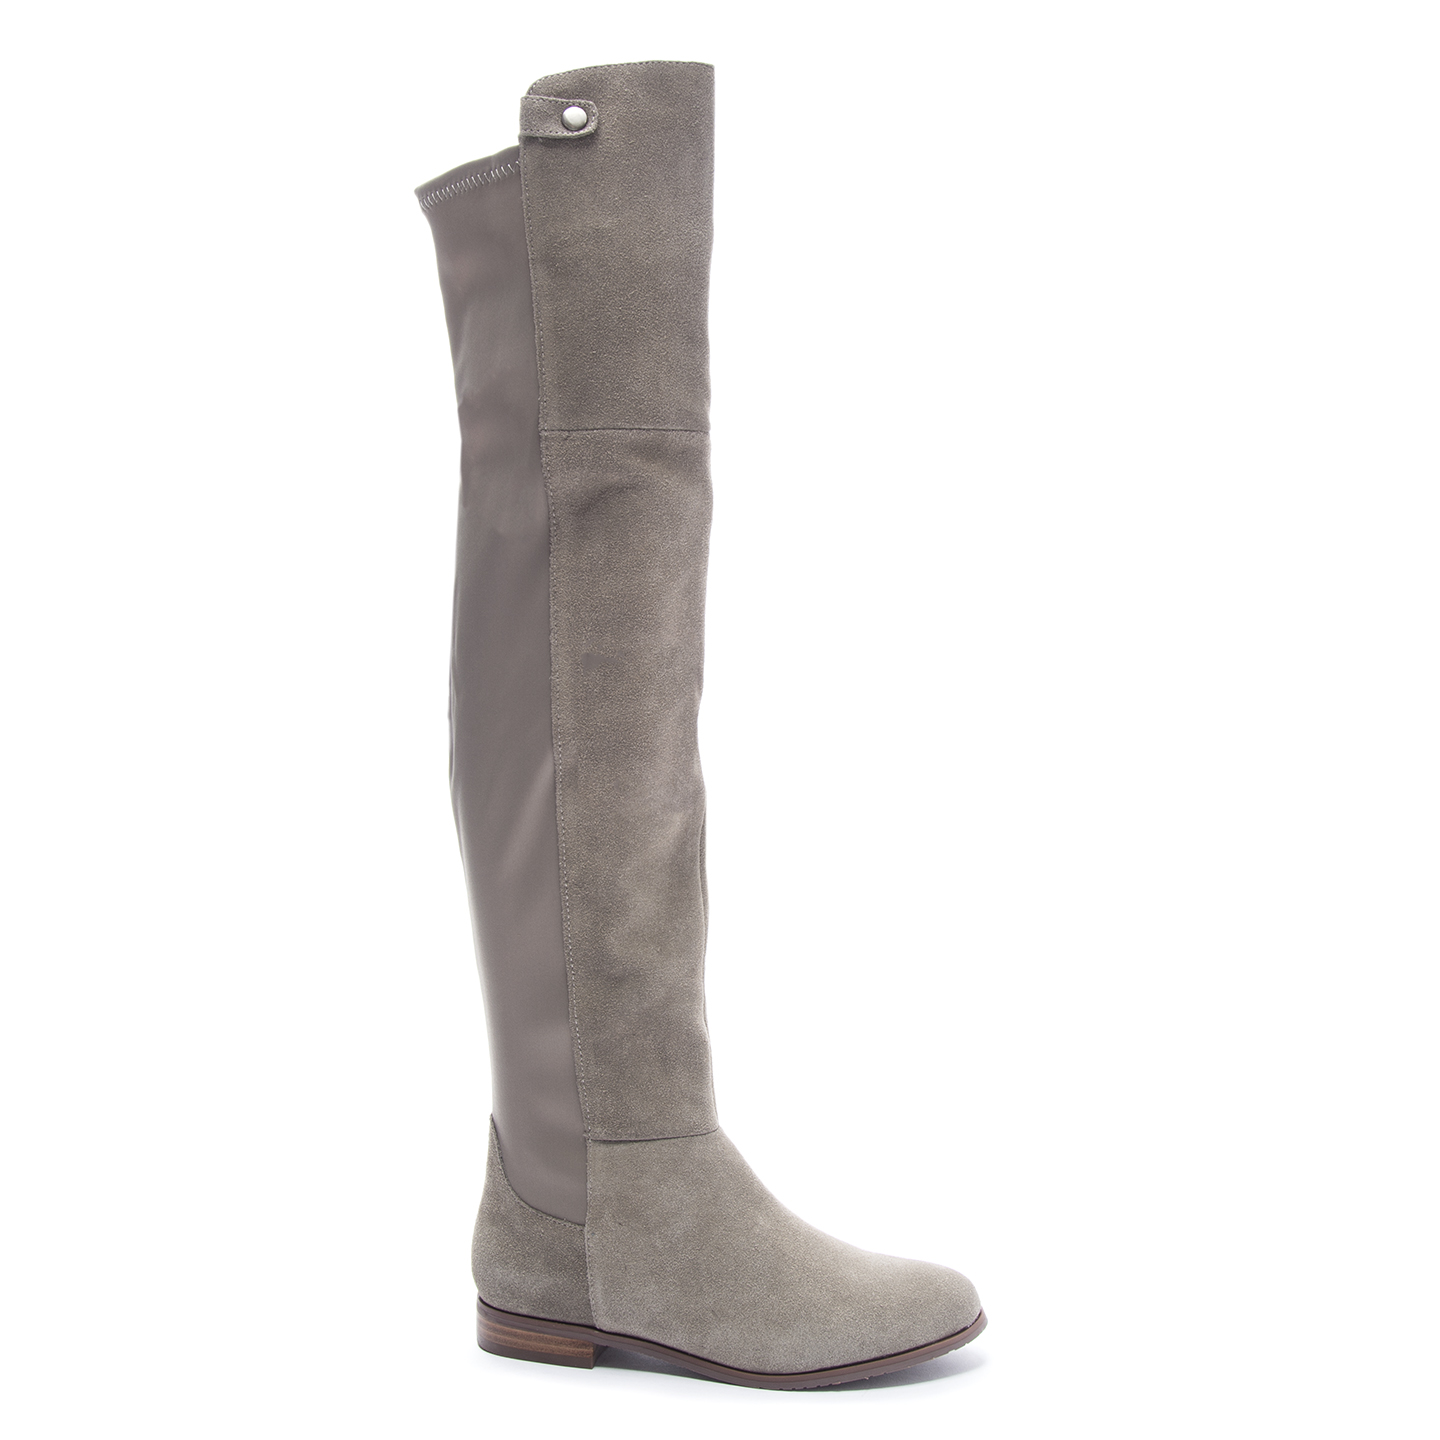 868fd4bf32ed 21 pairs of over-the-knee boots that look expensive — but cost less ...